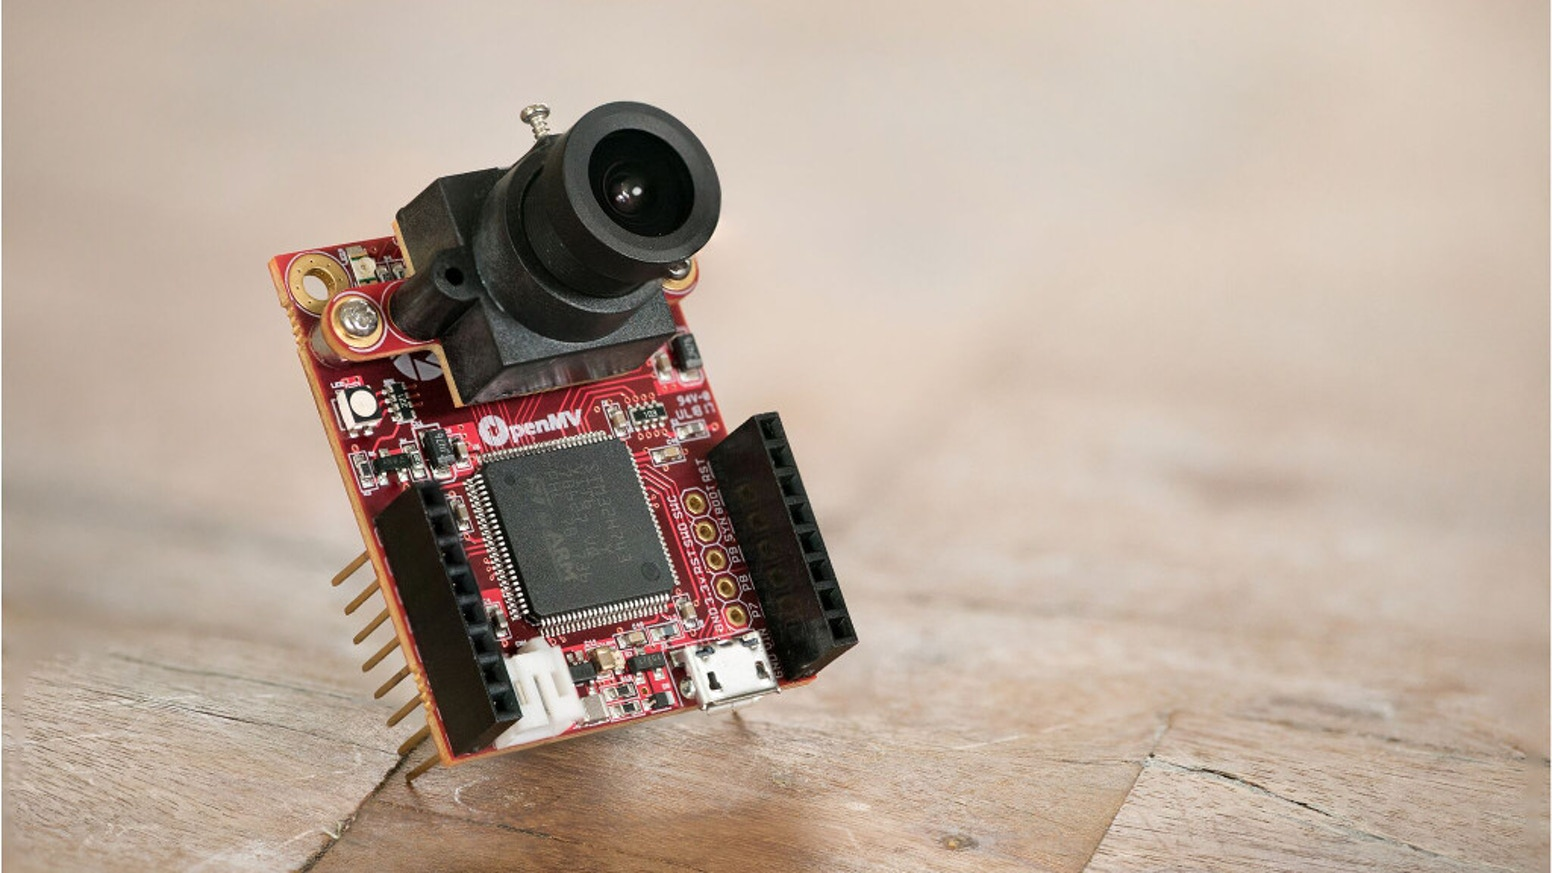 The OpenMV Cam H7 is an open-source MicroPython powered machine vision camera designed for low-power real-time applications.